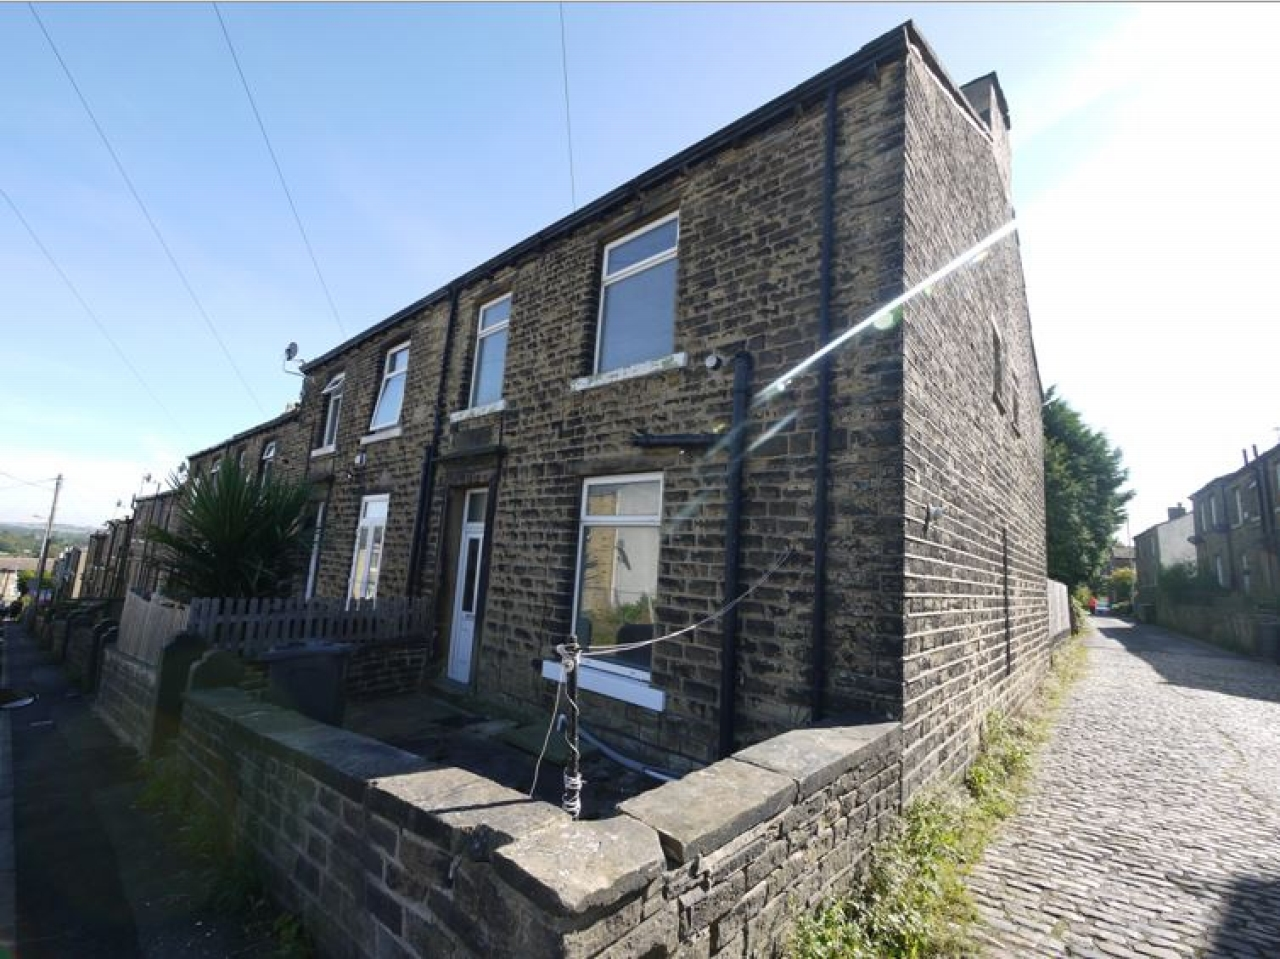 2 bedroom end terraced house To Let in Hudderfield - Photograph 1.